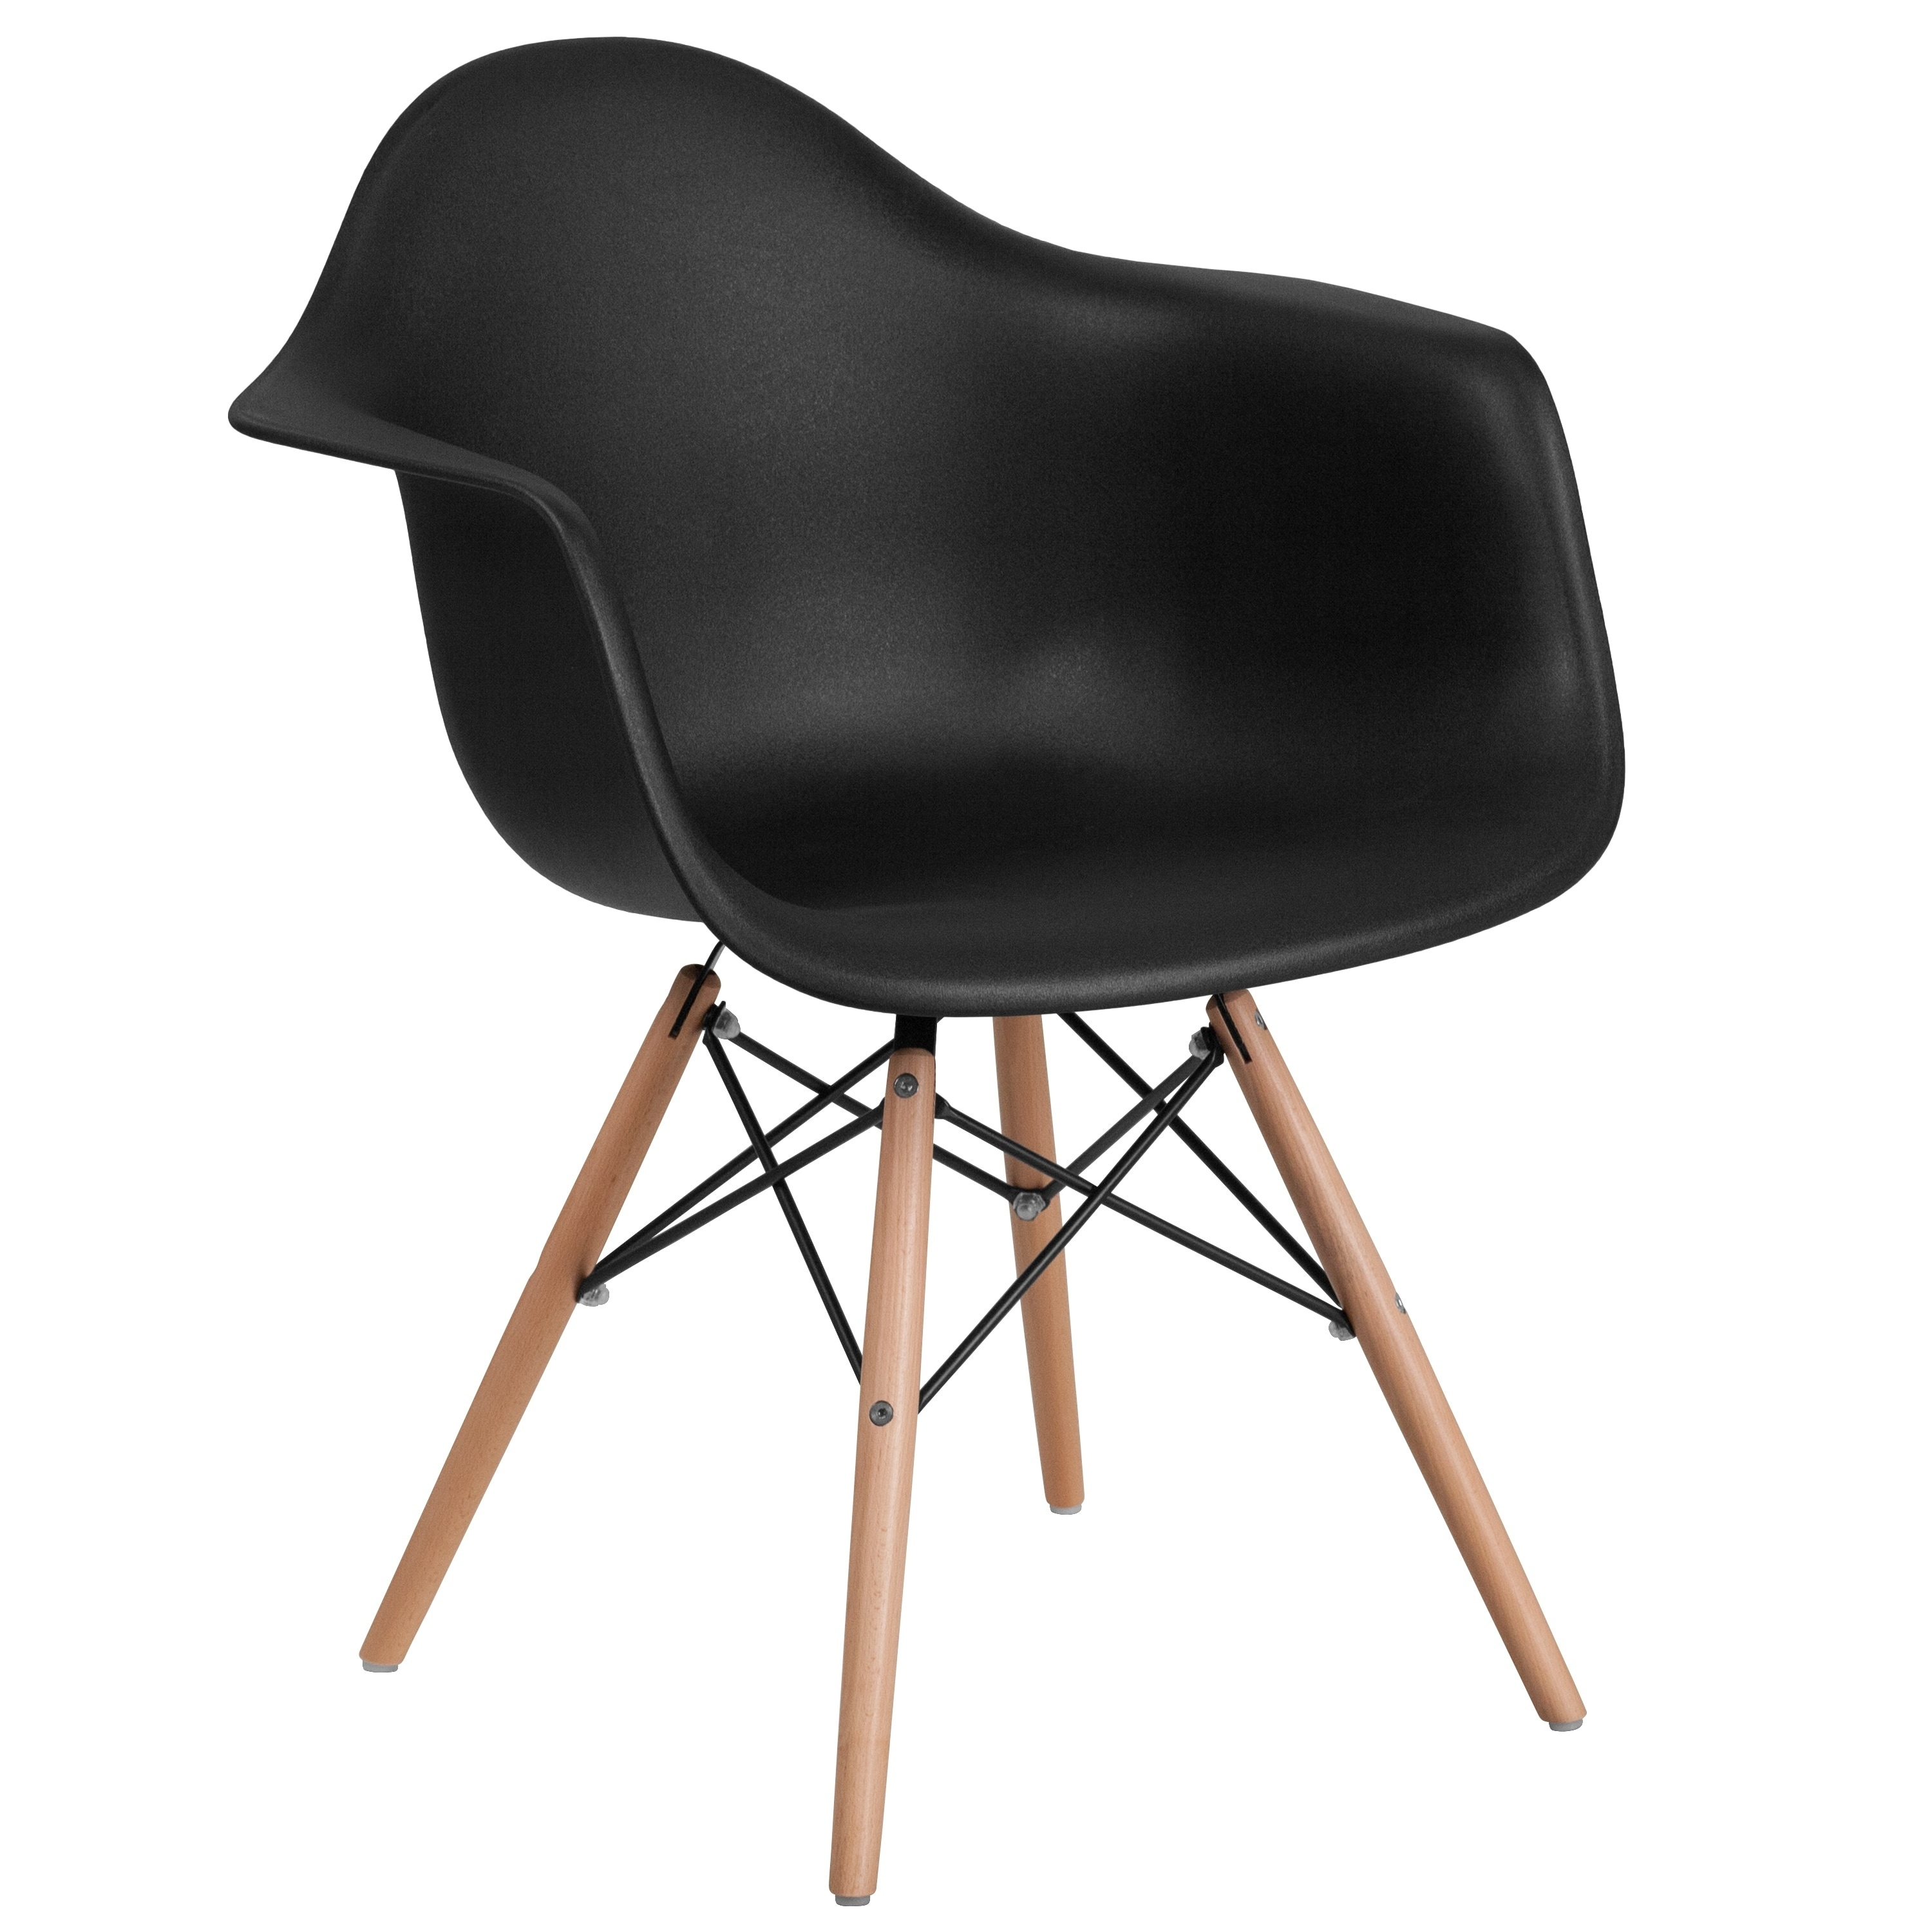 Lancaster Home Alonza Series Plastic Chair with Wood Base